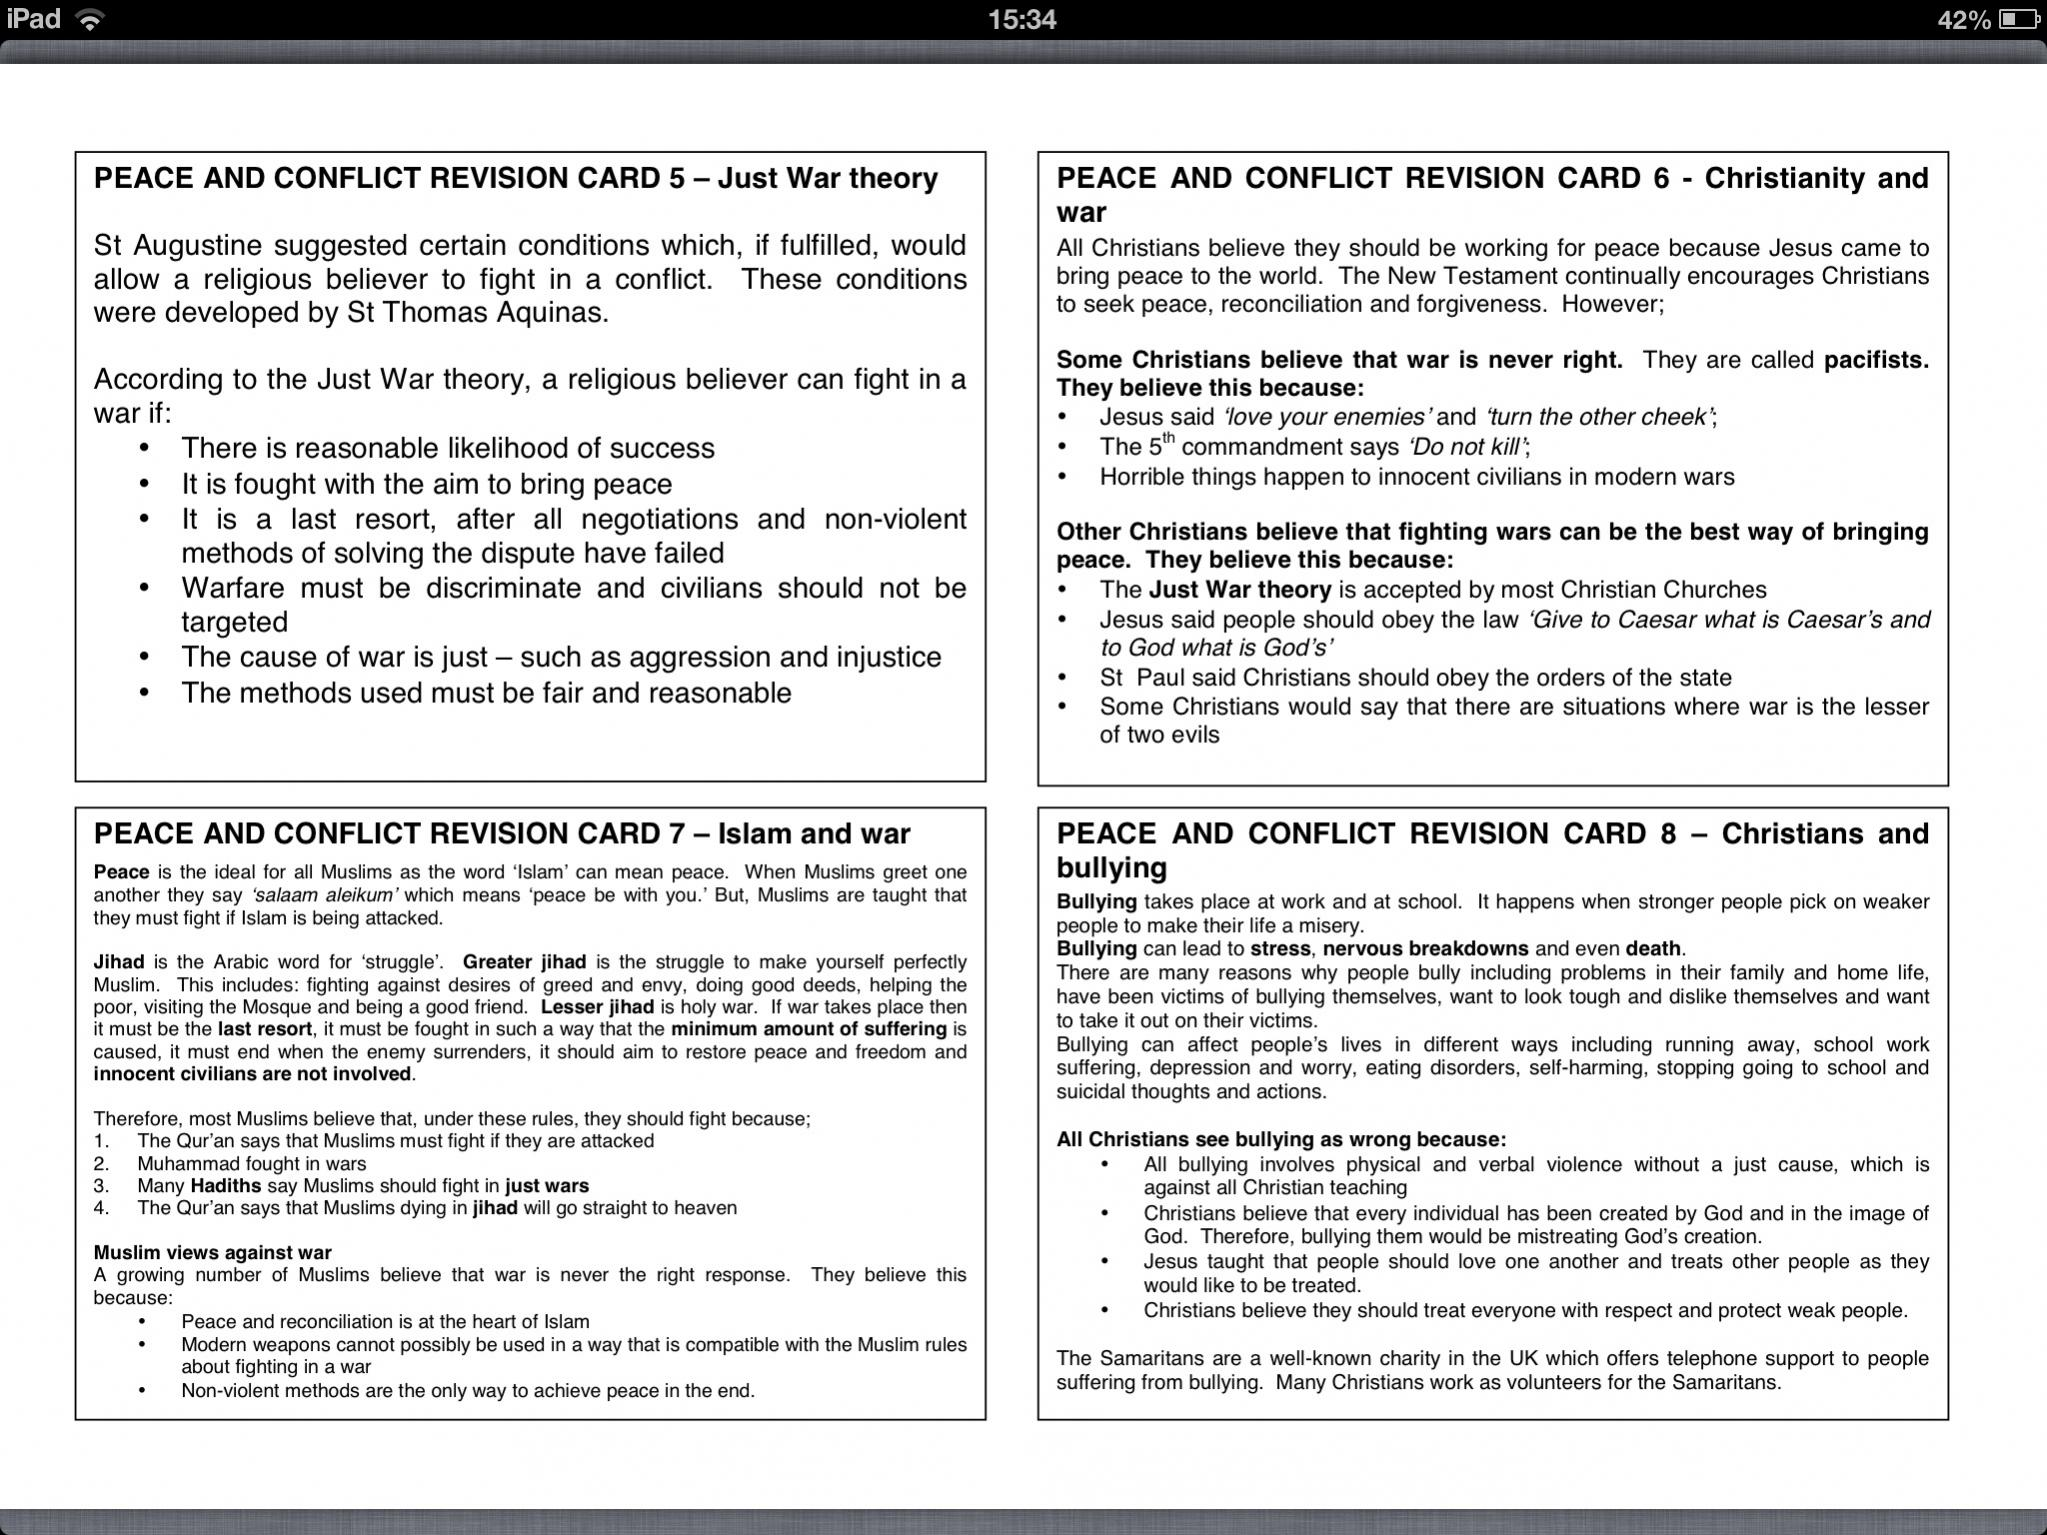 edexcel b geography coursework Science coursework b 2013 booklet geography river coursework evaluation teach the wjec gcse music wjec gcse history coursework mark scheme edexcel coursework.